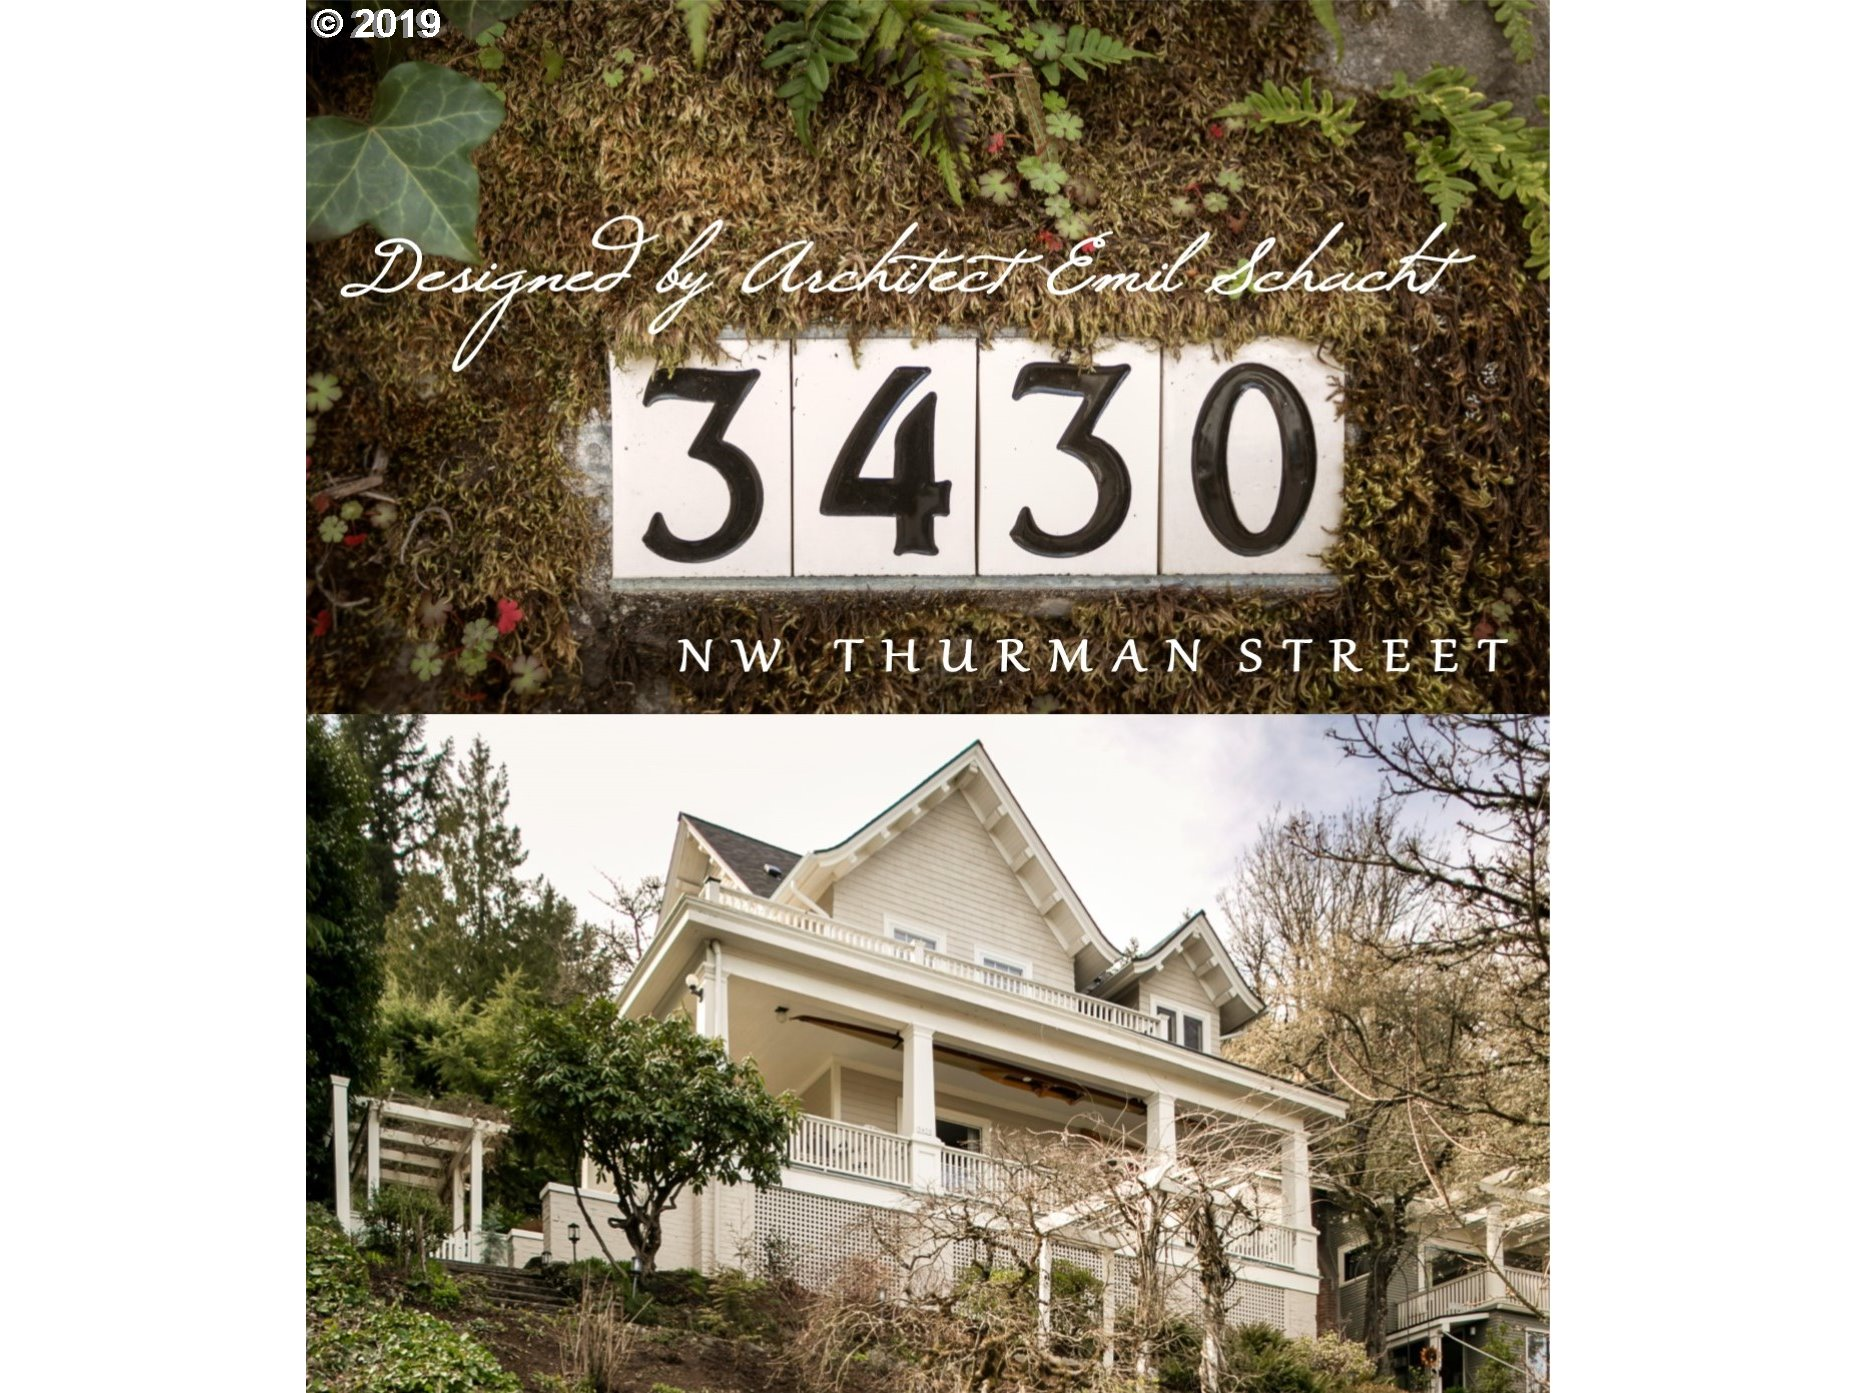 3430 NW THURMAN ST, Portland OR 97210